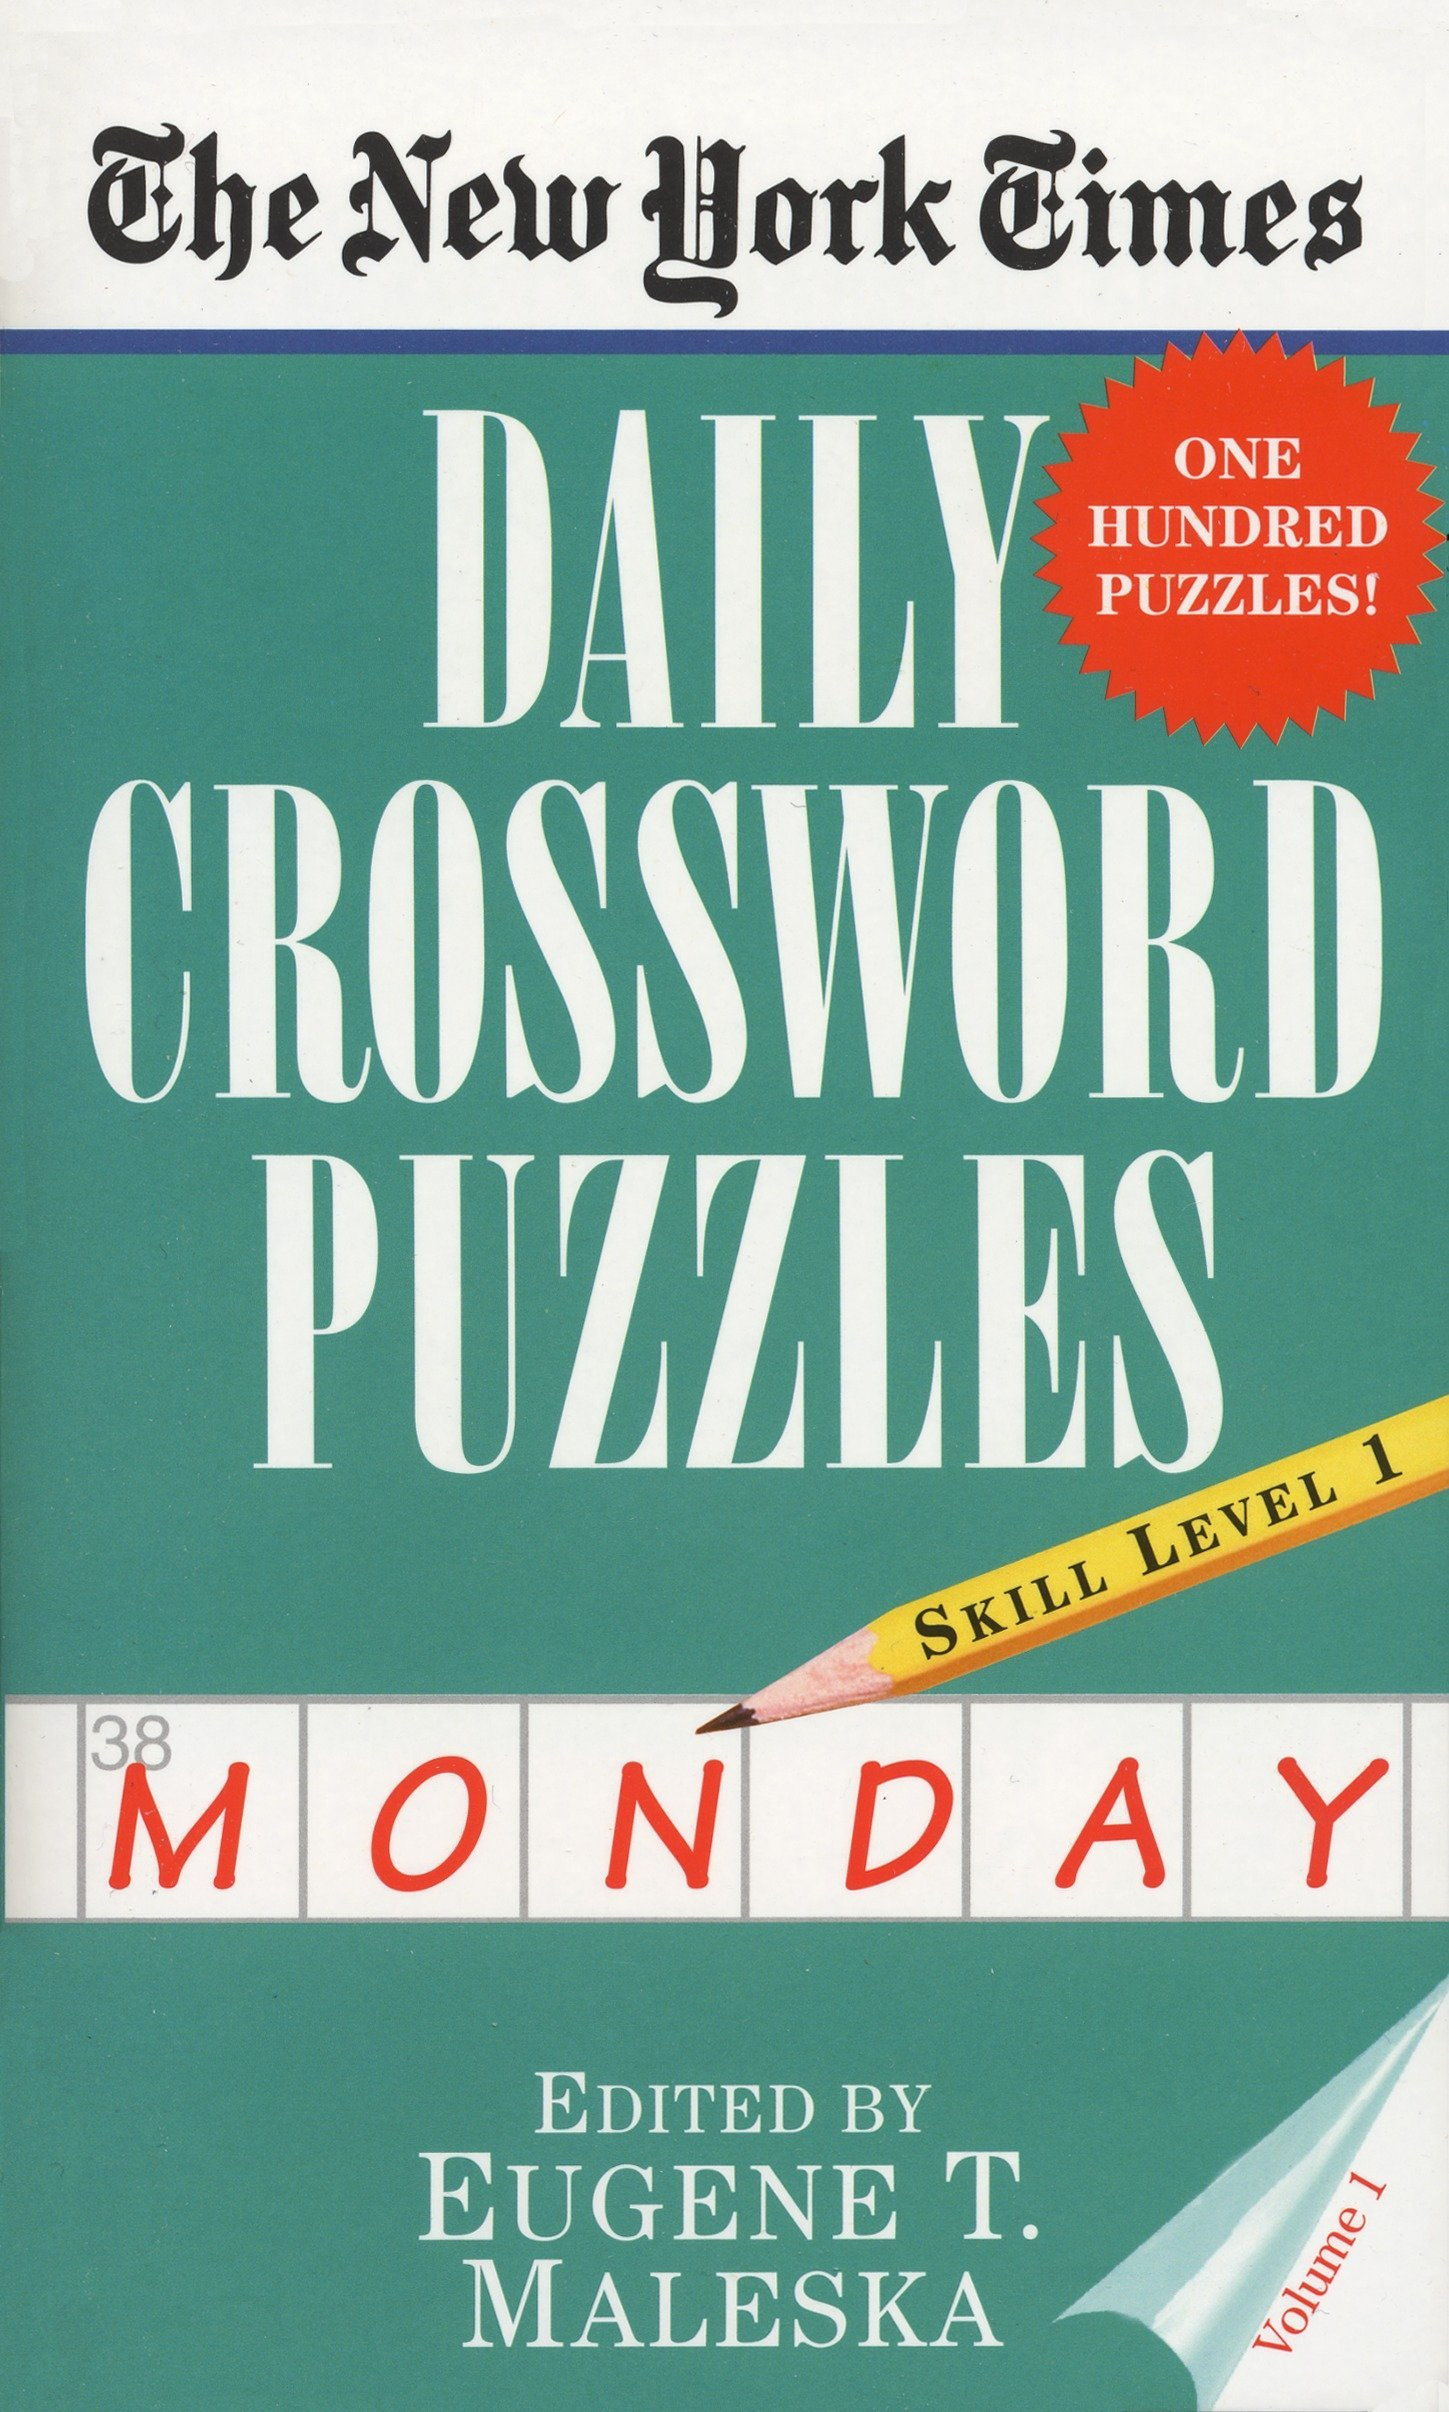 The New York Times Daily Crossword Puzzles Monday Volume I New